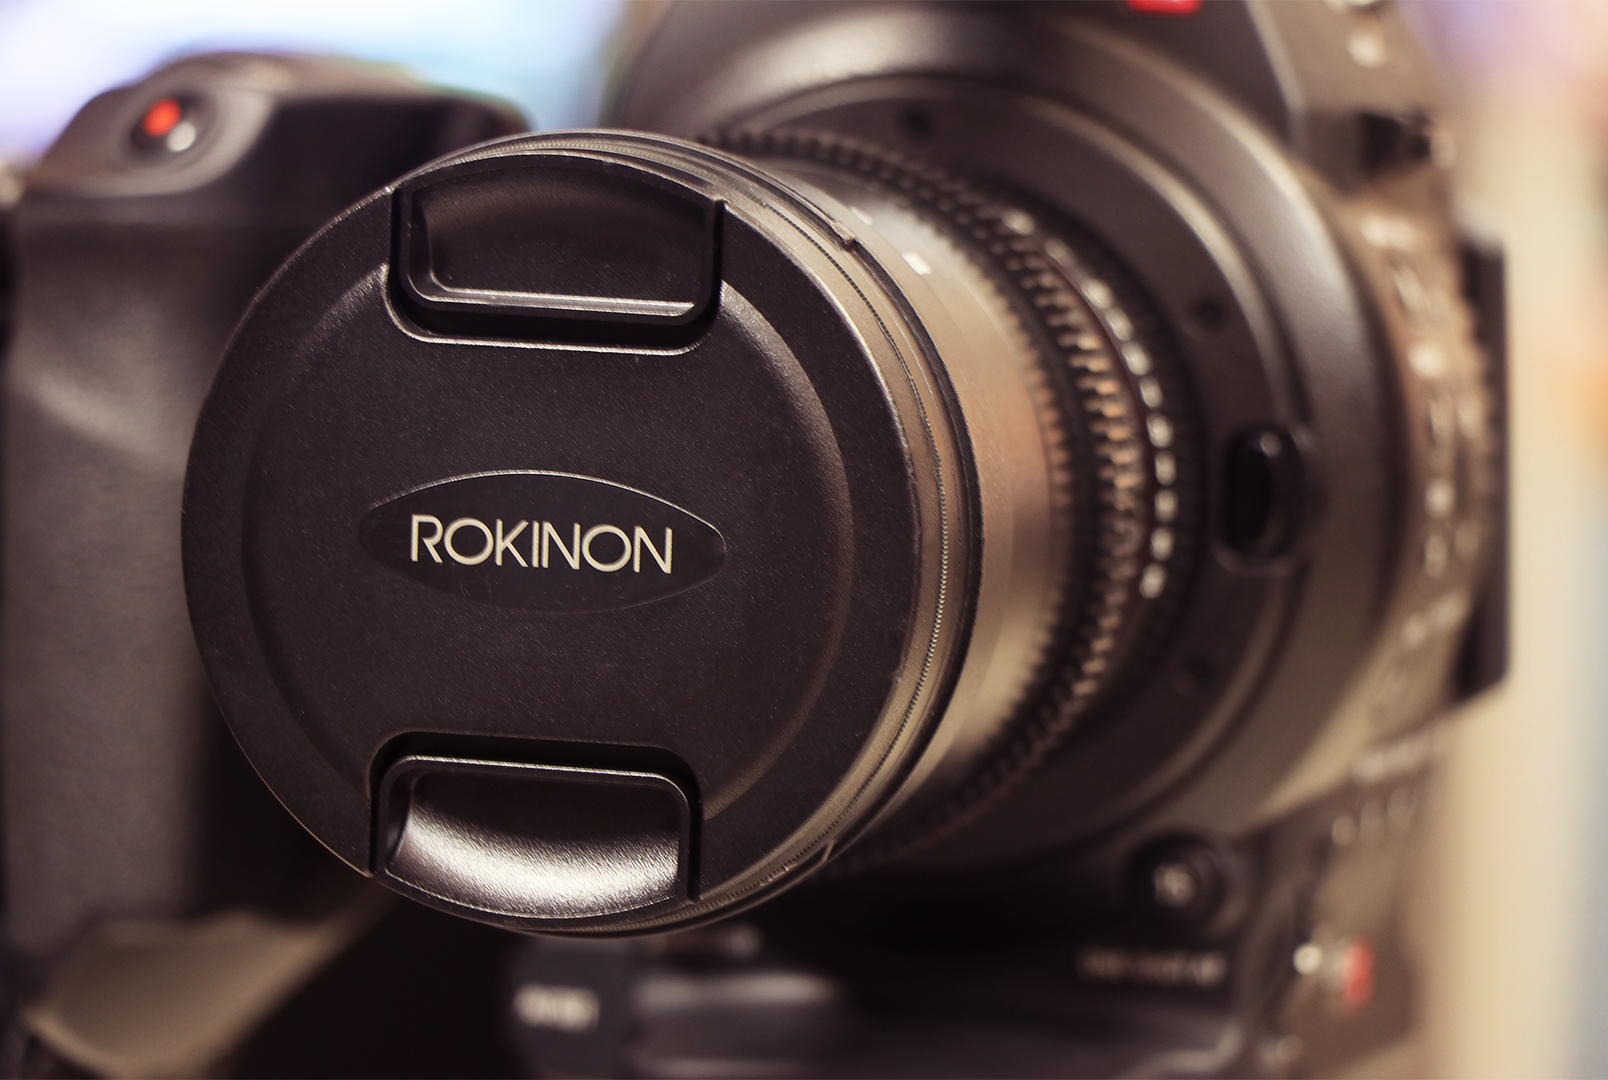 Canon C100 with Rokinon Lenses